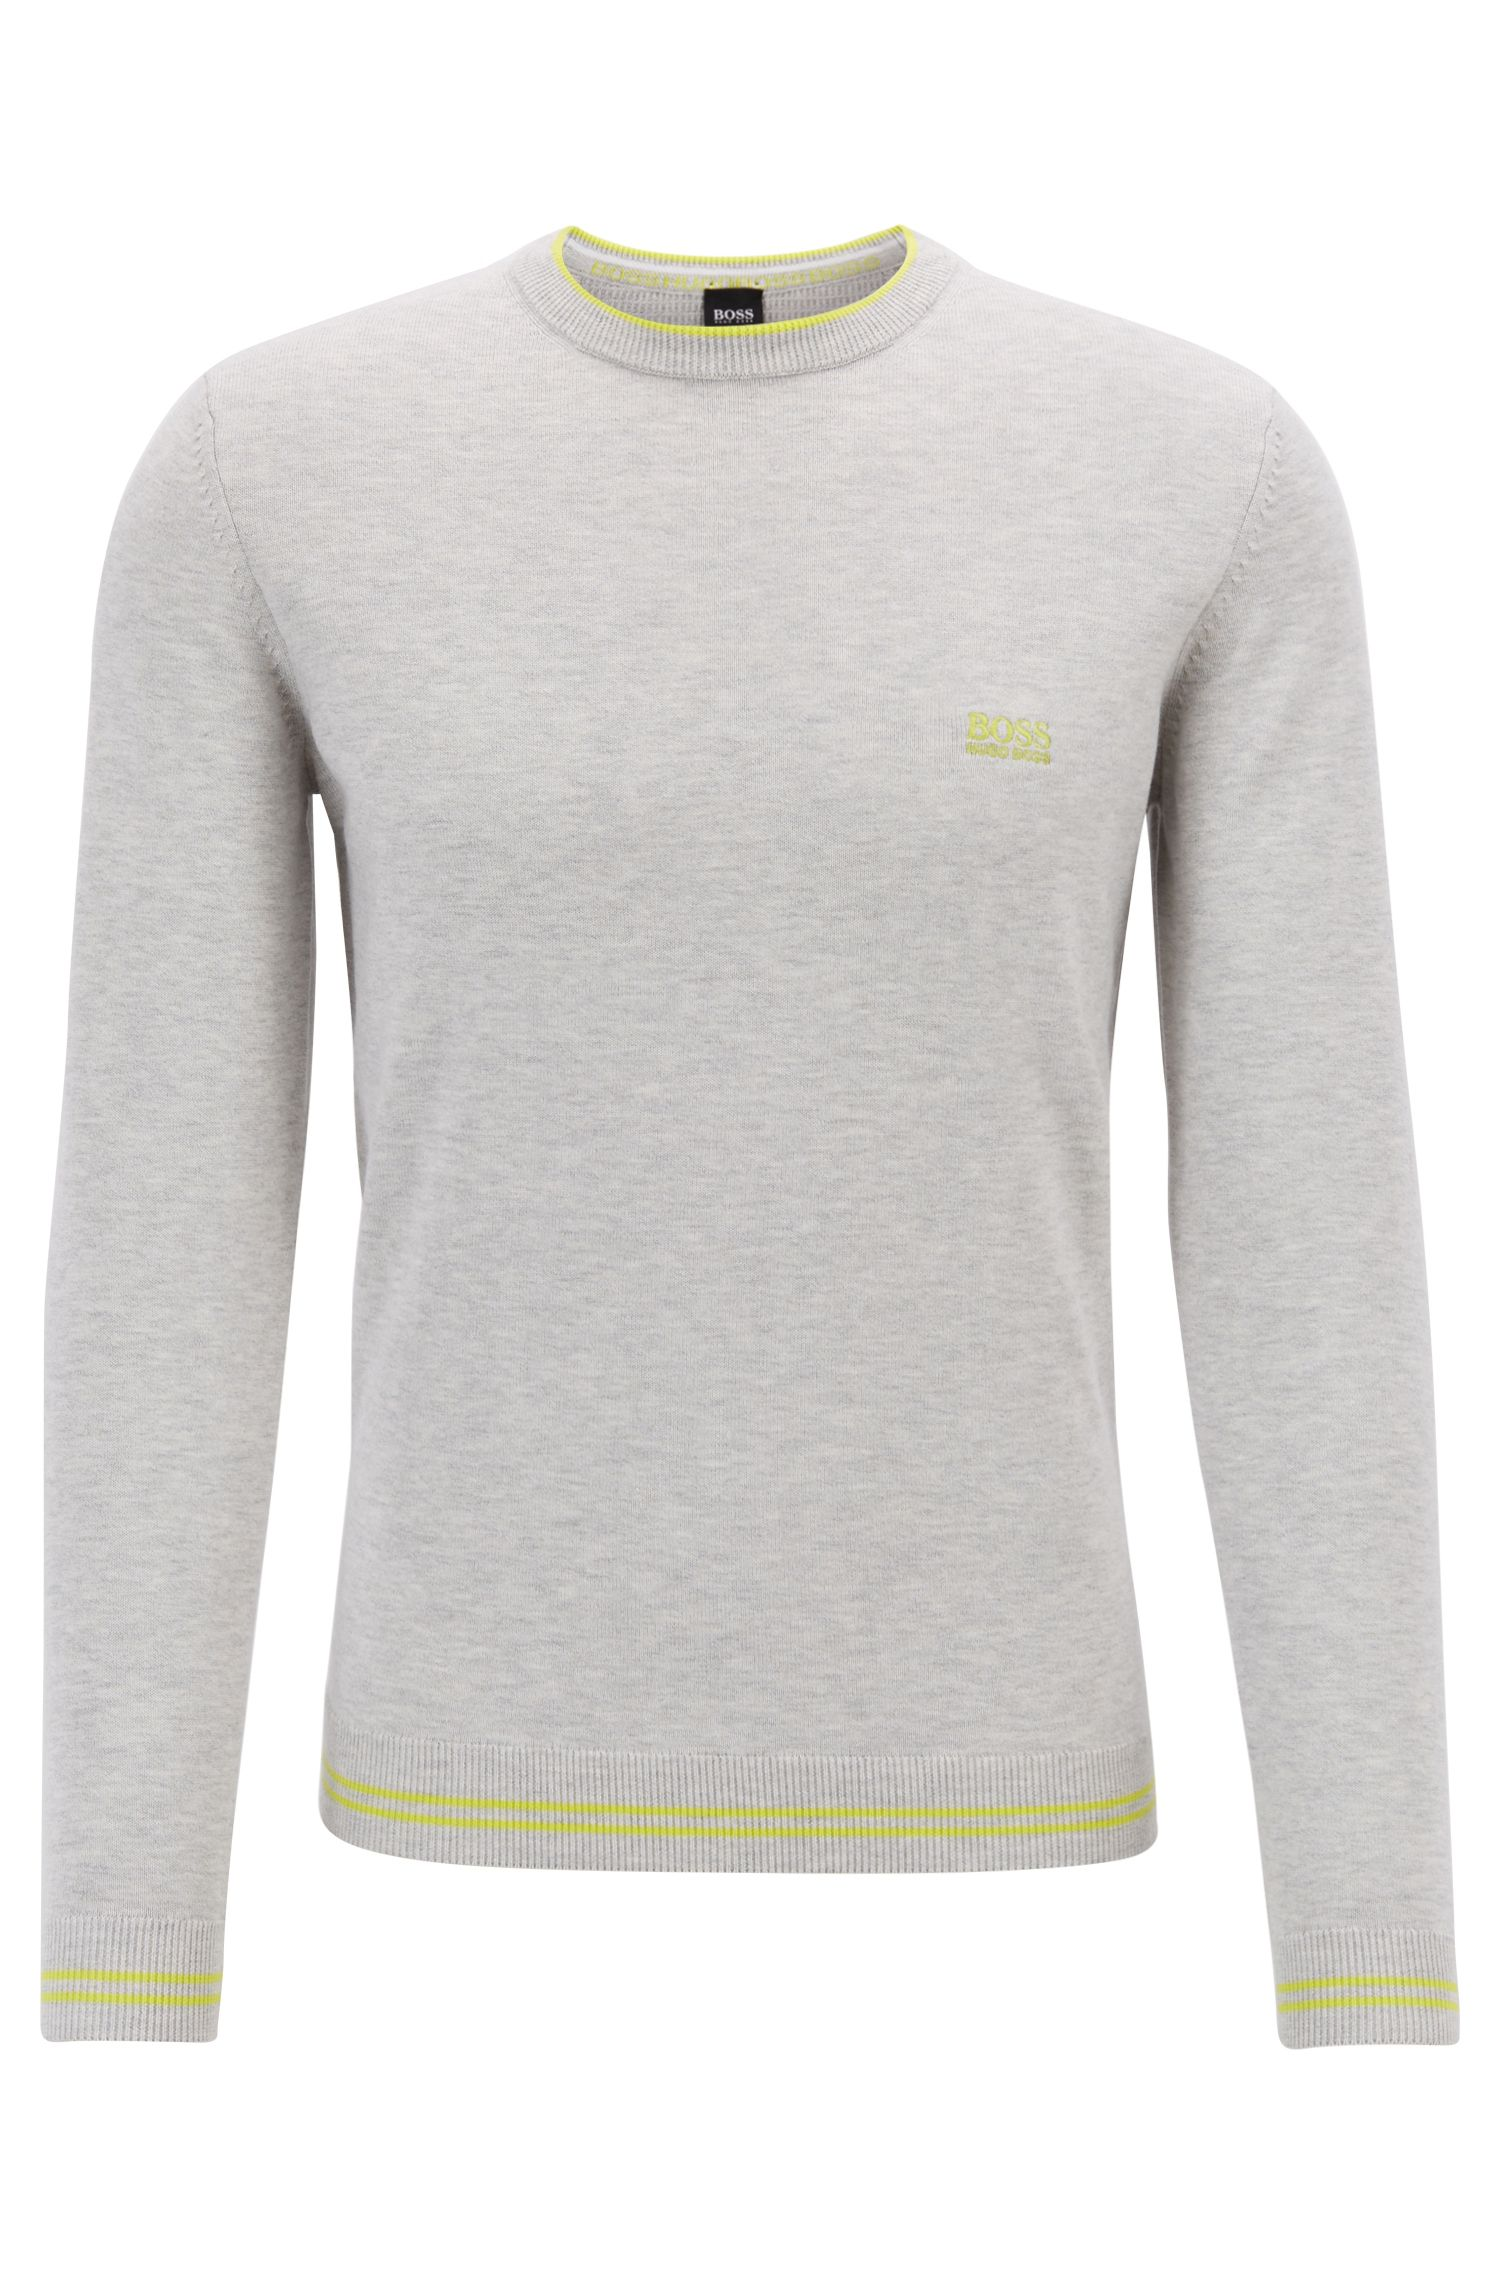 Cotton-blend knitted sweater with tipping stripes, Light Grey